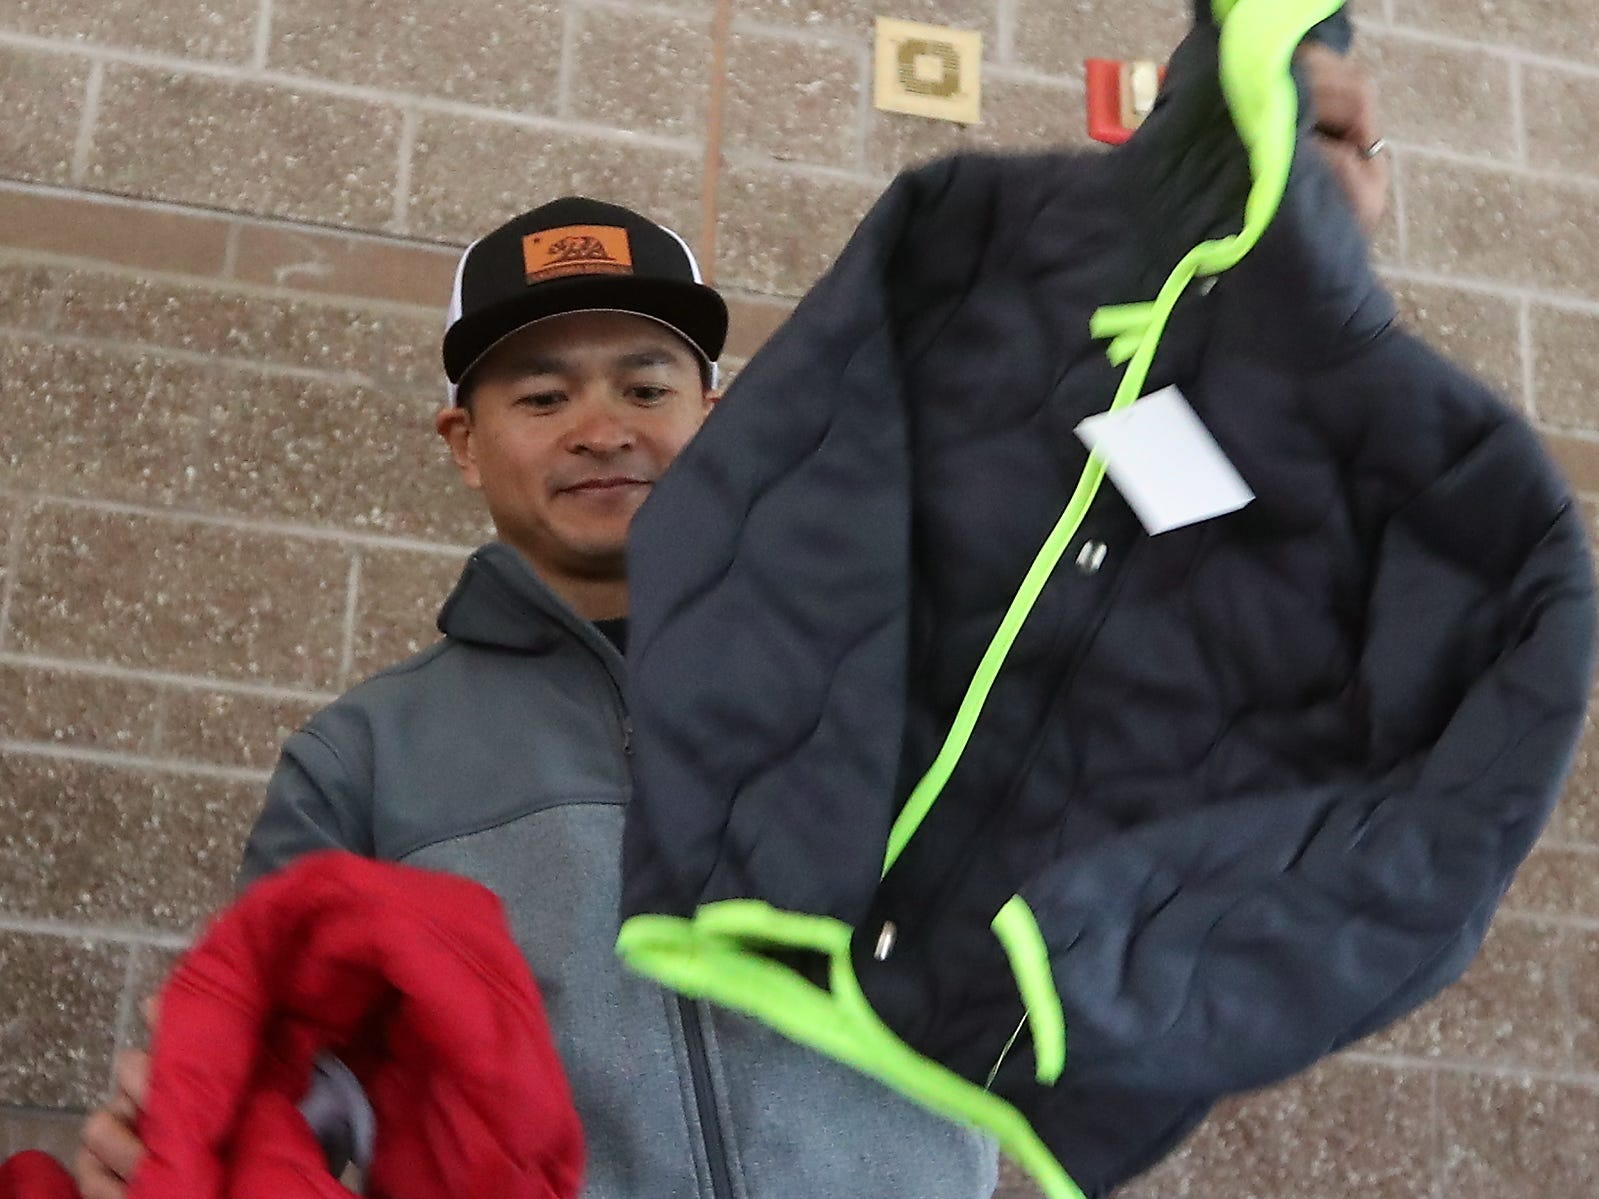 Bremerton firefighter Carlo Celeste pulls new coats out boxes as he and fellow firefighters and volunteers help with Coats for Kids event held at Kitsap Lake Elementary School on Wednesday, November 28, 2018.